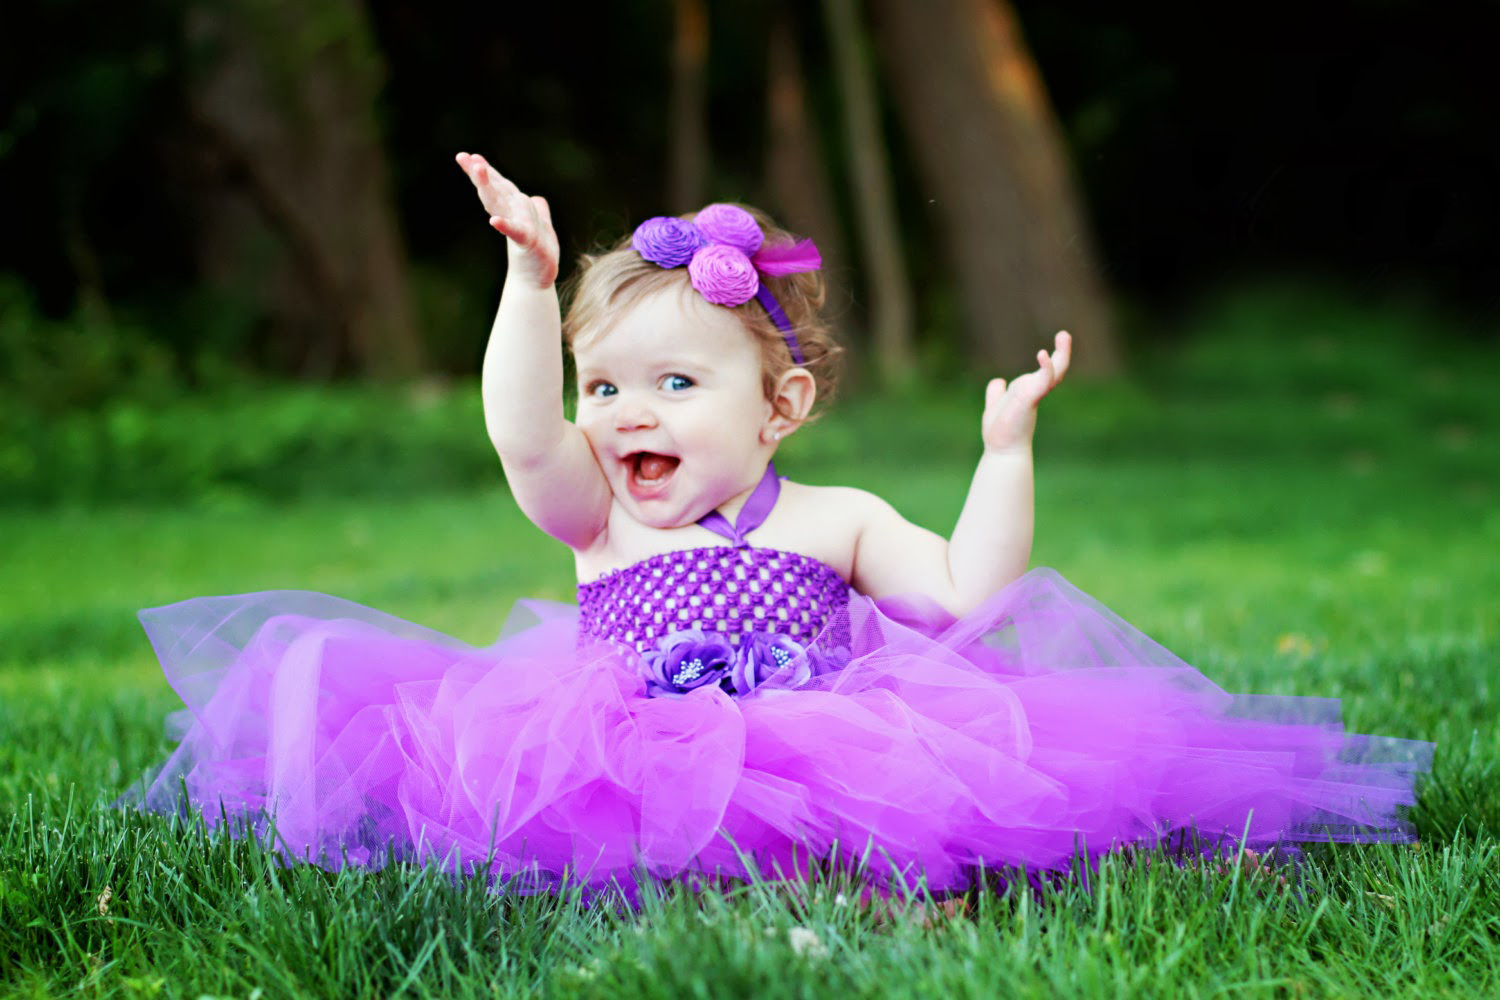 Cute Baby Hd Pics Free Download